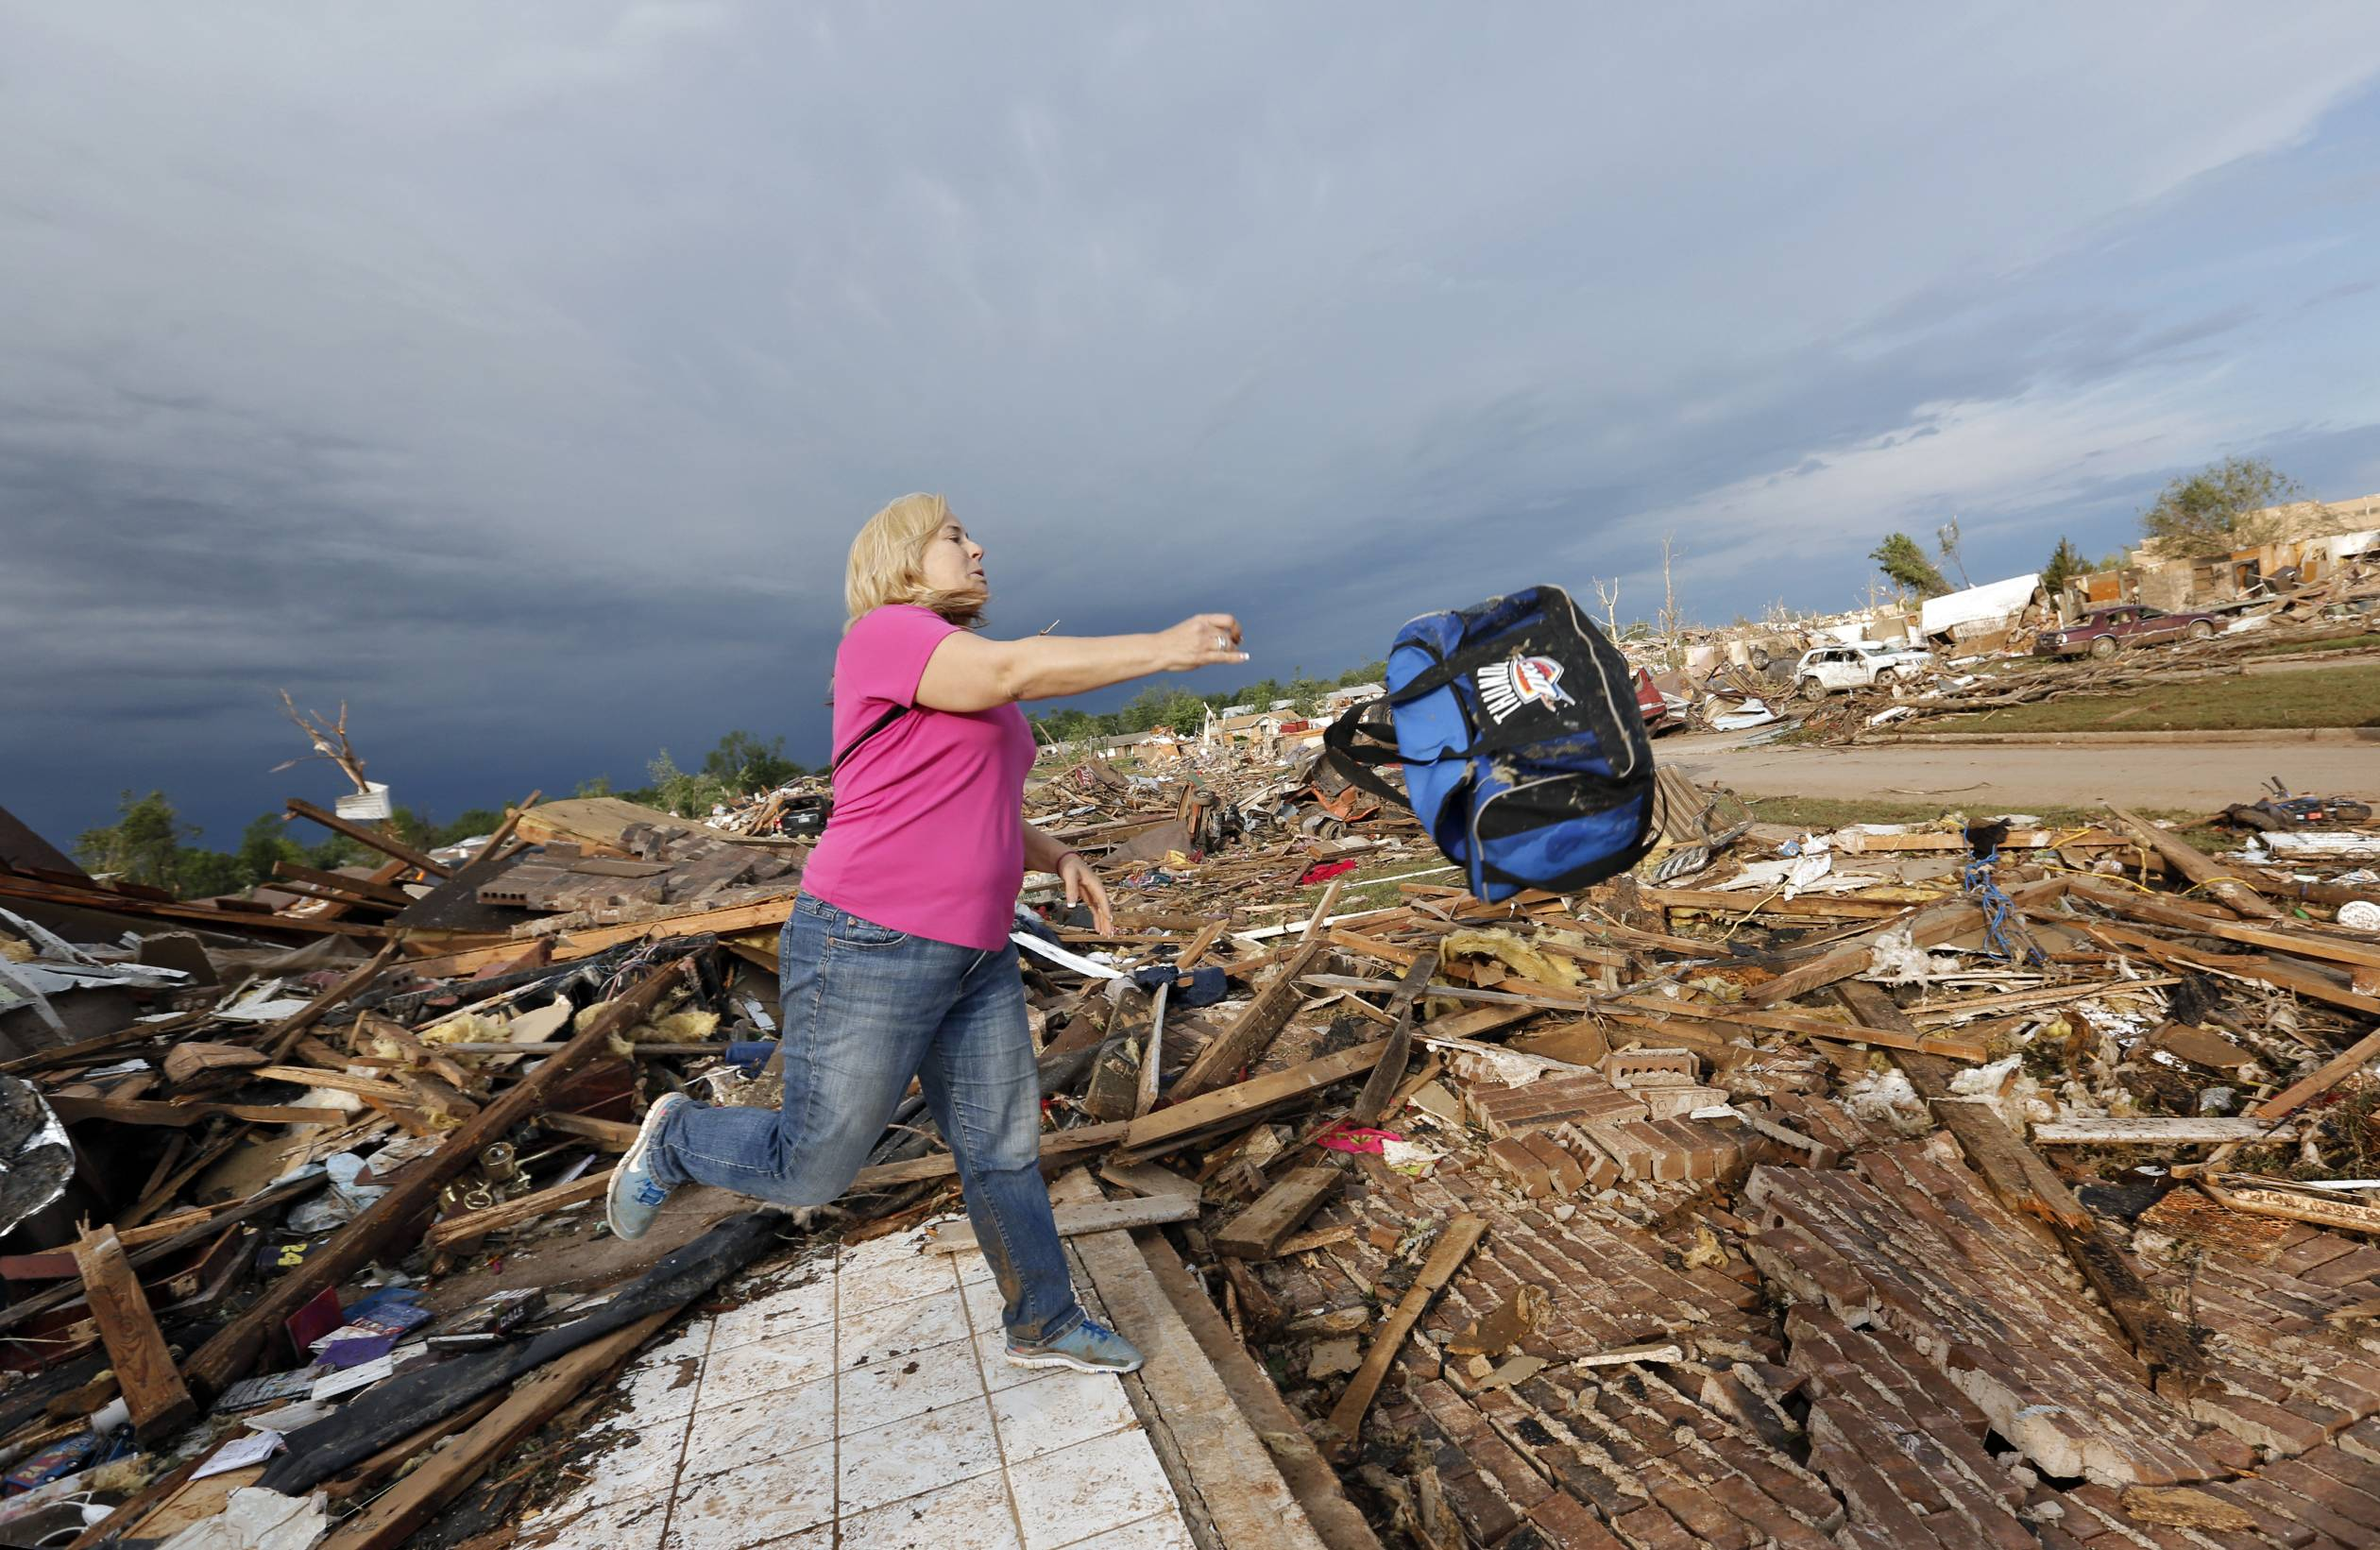 Penny Phillips throws out a bag of salvaged clothing as she goes through the remains of her home on Tuesday, May 21, 2013 in Moore, Okla. that was destroyed by Monday's tornado in the area near 4th and Bryant.